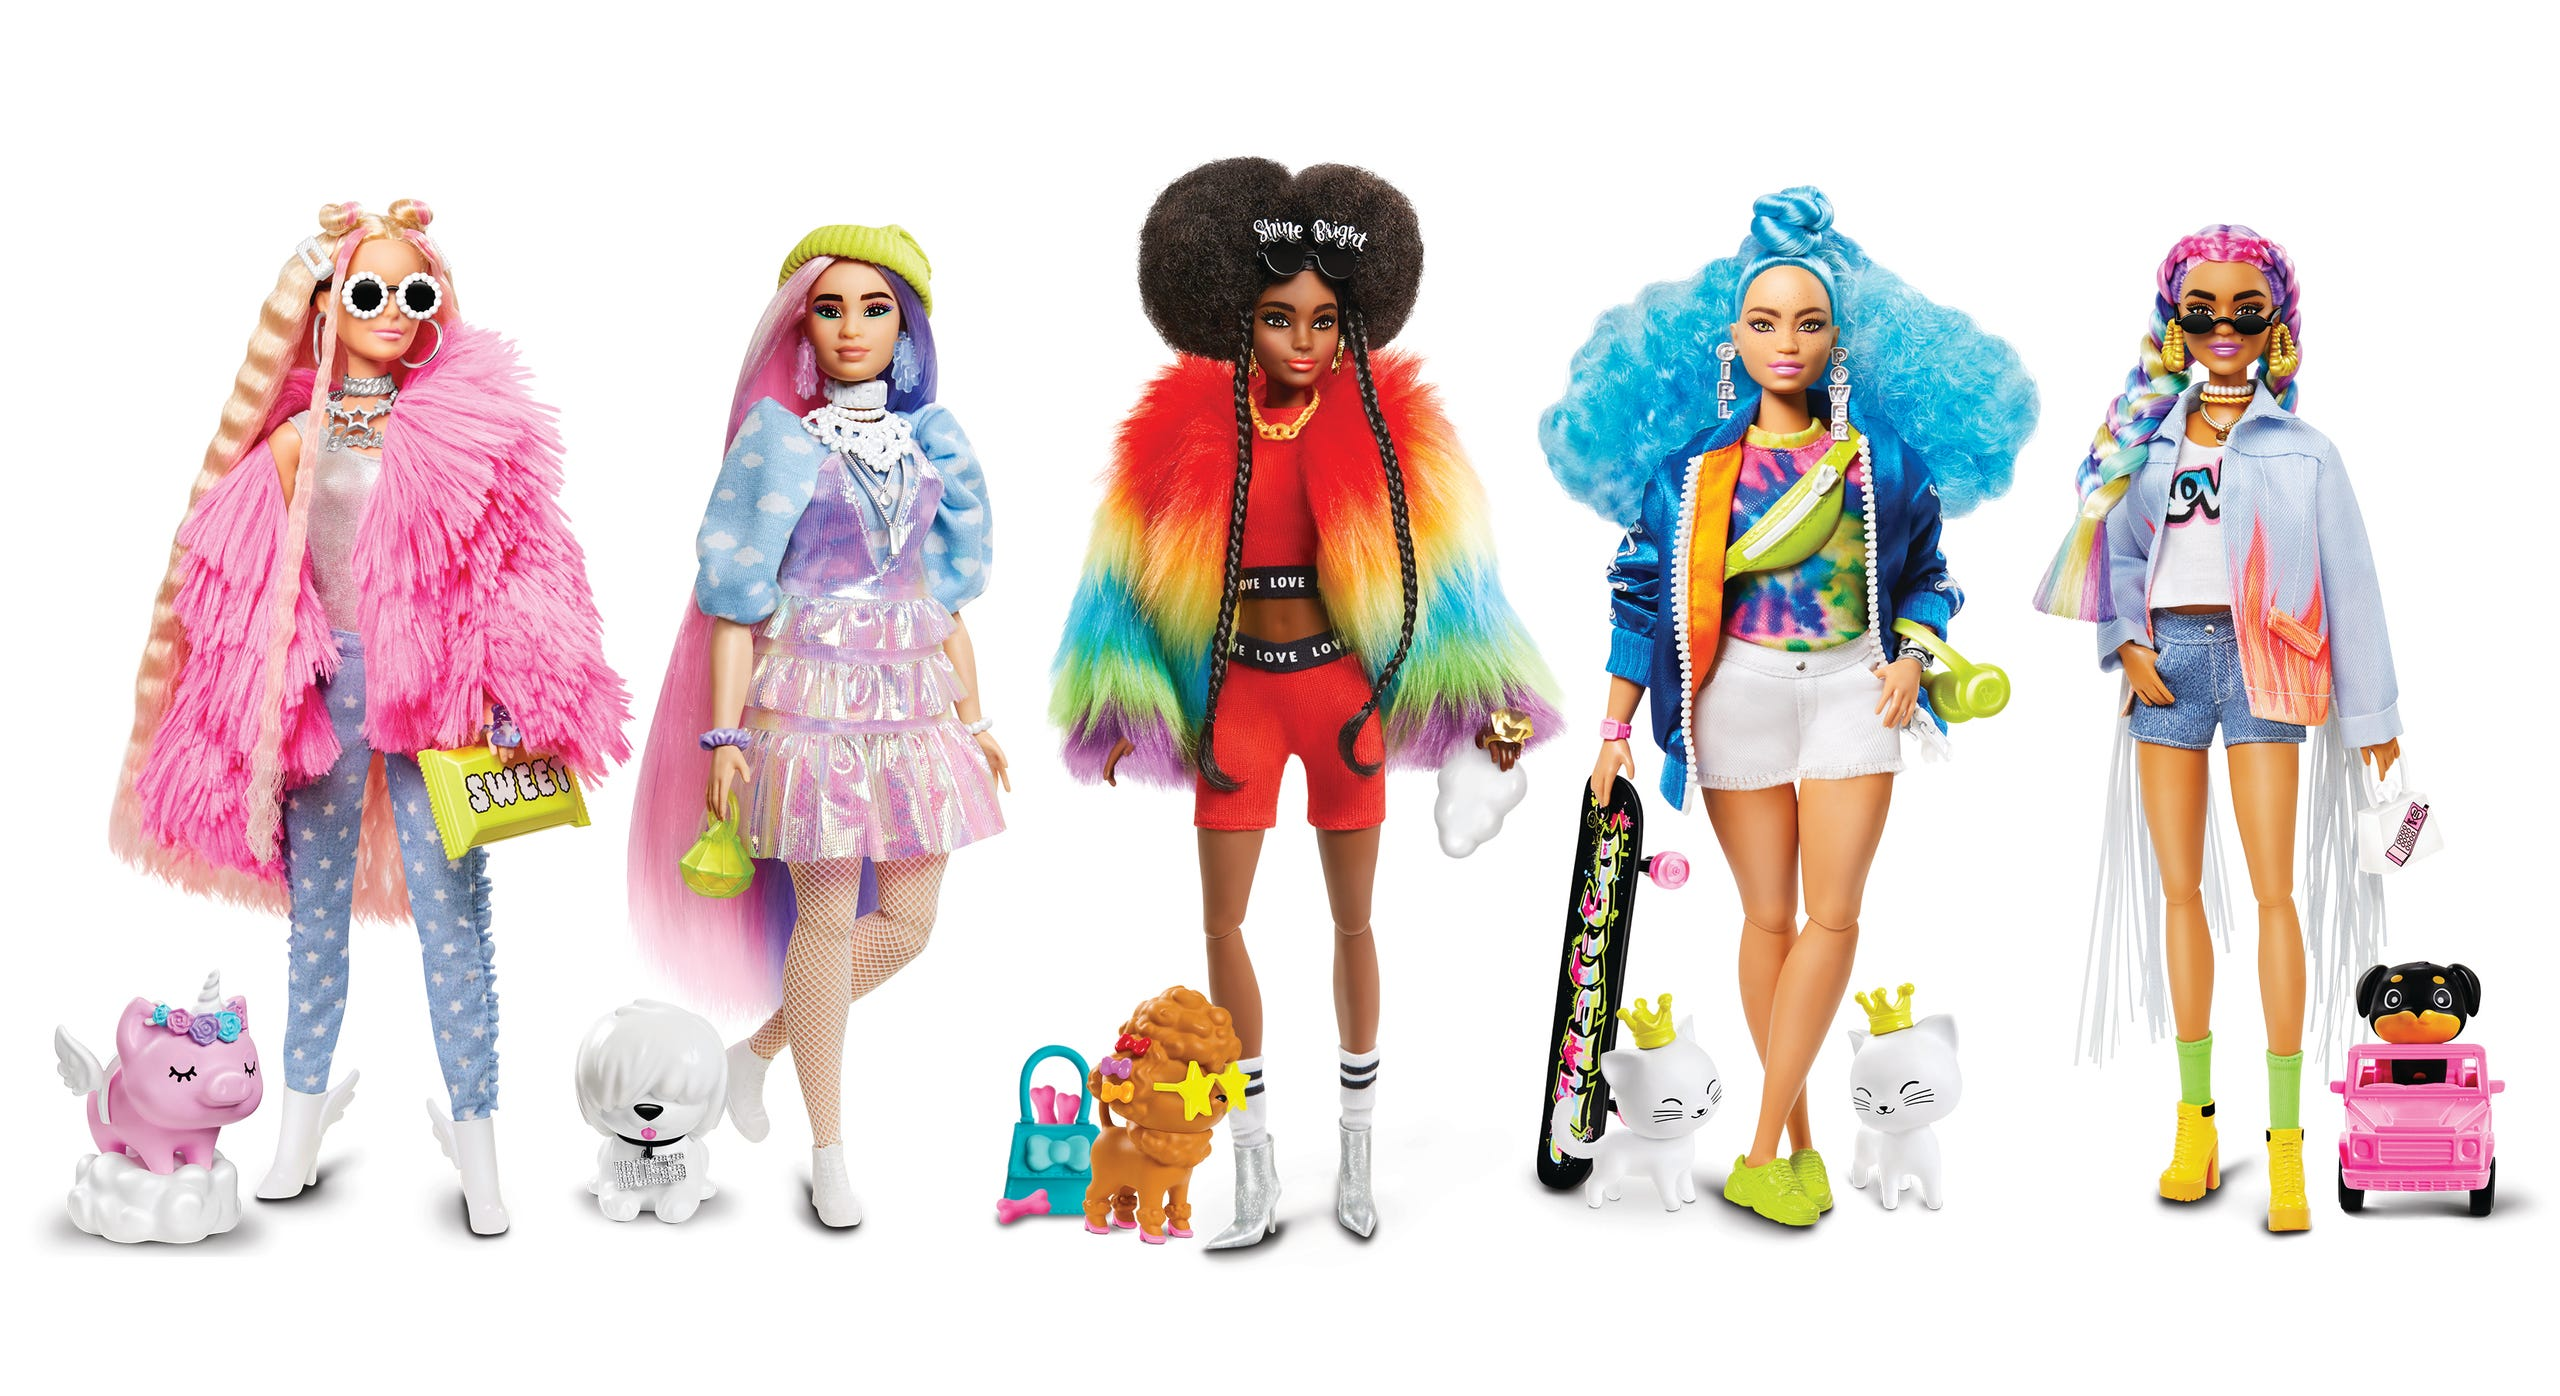 There are five dolls in the new Barbie Extra line. each selling for a suggested retail price of $24.99 at Target, Walmart and Amazon.